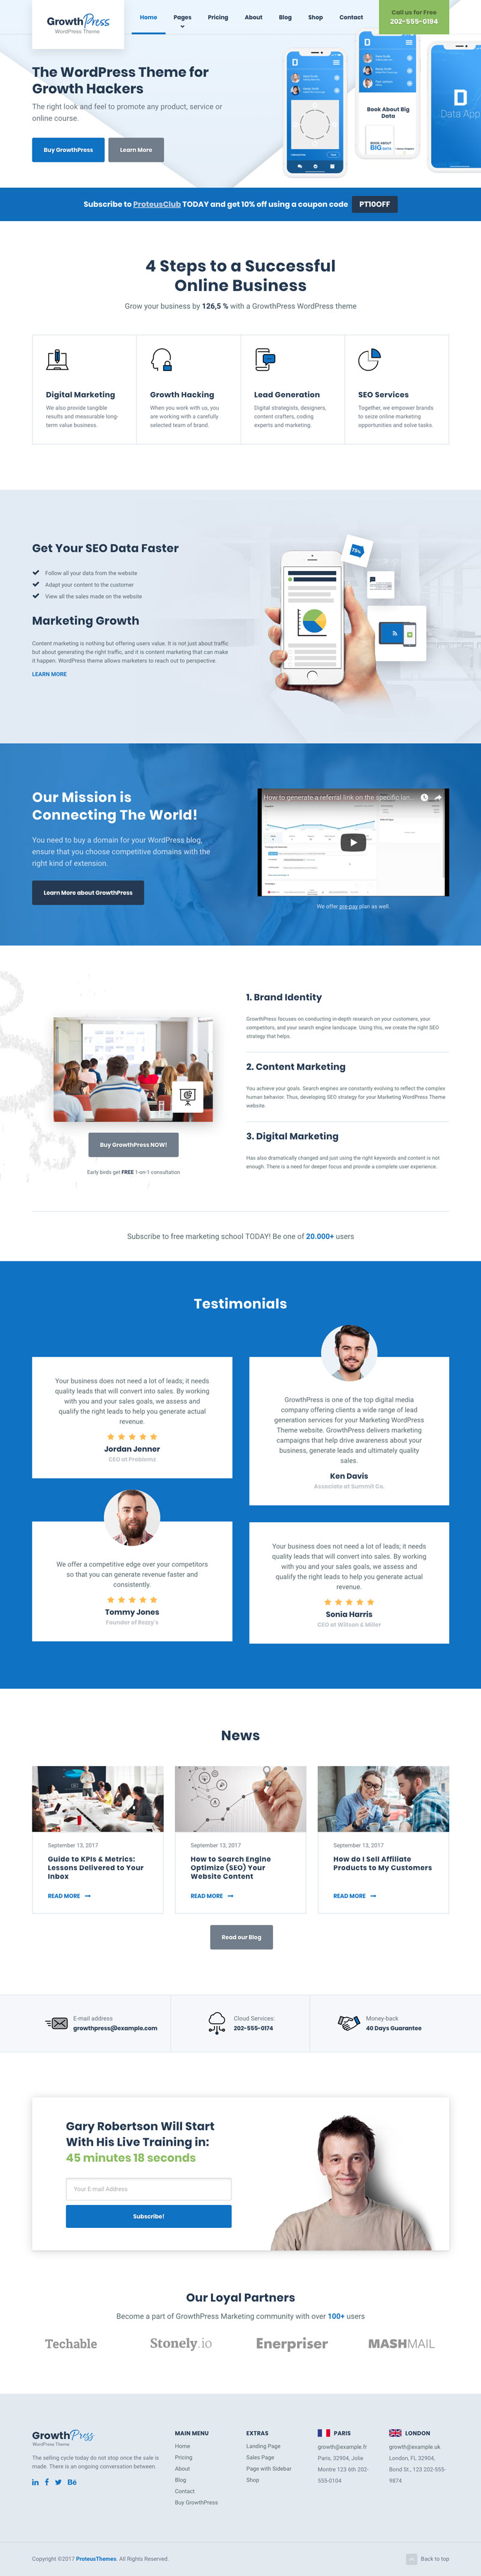 GrowthPress-WordPress-Digital-Marketing-Theme